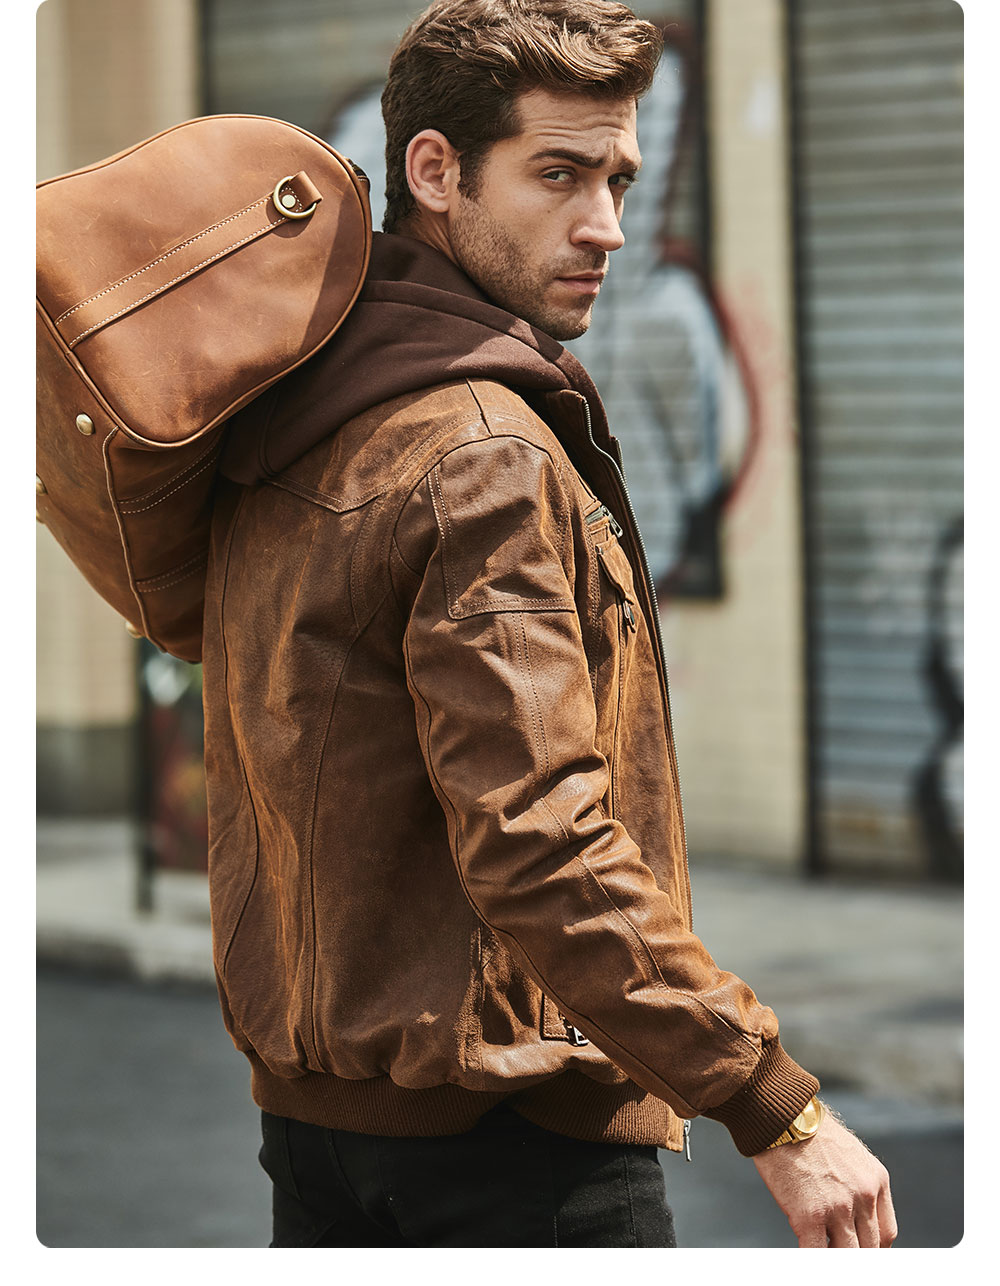 H49a10ce9aa2e45789ea6f9c58cbb8180e FLAVOR New Men's Real Leather Jacket with Removable Hood Brown Jacket Genuine Leather Warm Coat For Men